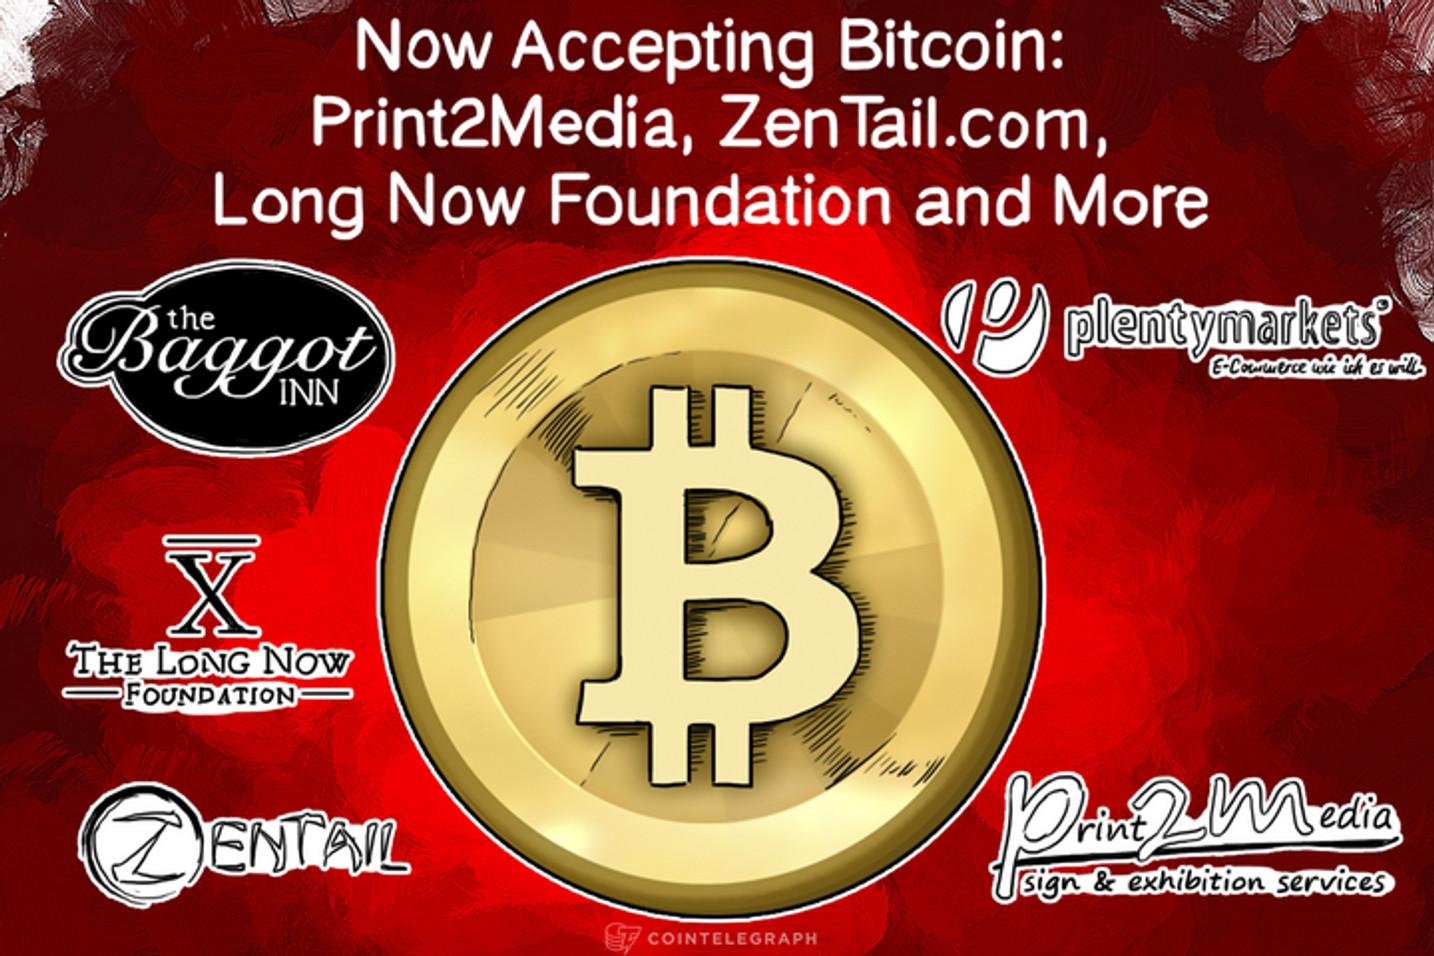 Now Accepting Bitcoin: Print2Media, ZenTail.com, Long Now Foundation and More